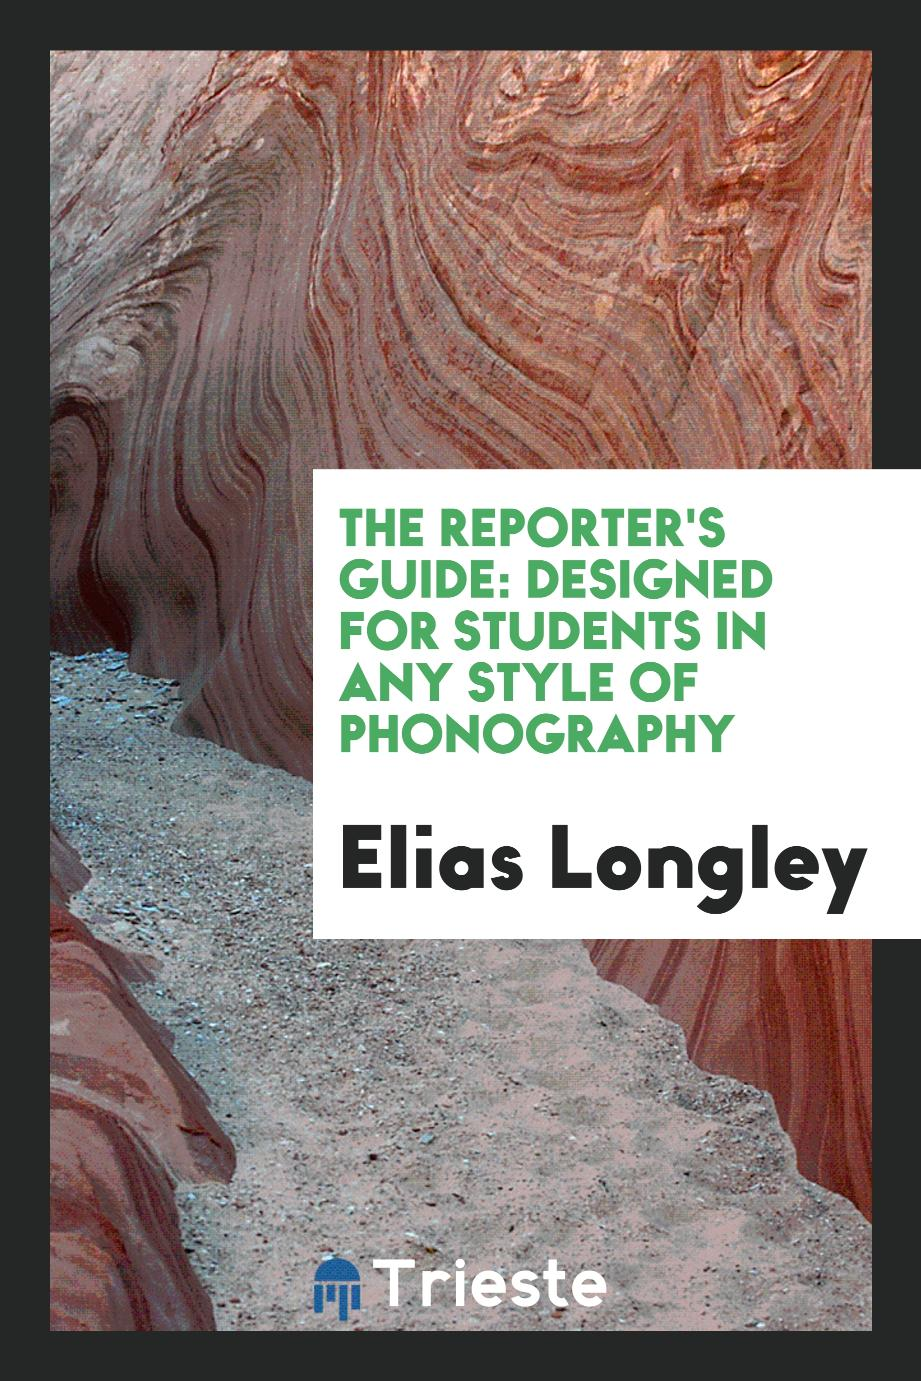 The reporter's guide: designed for students in any style of phonography